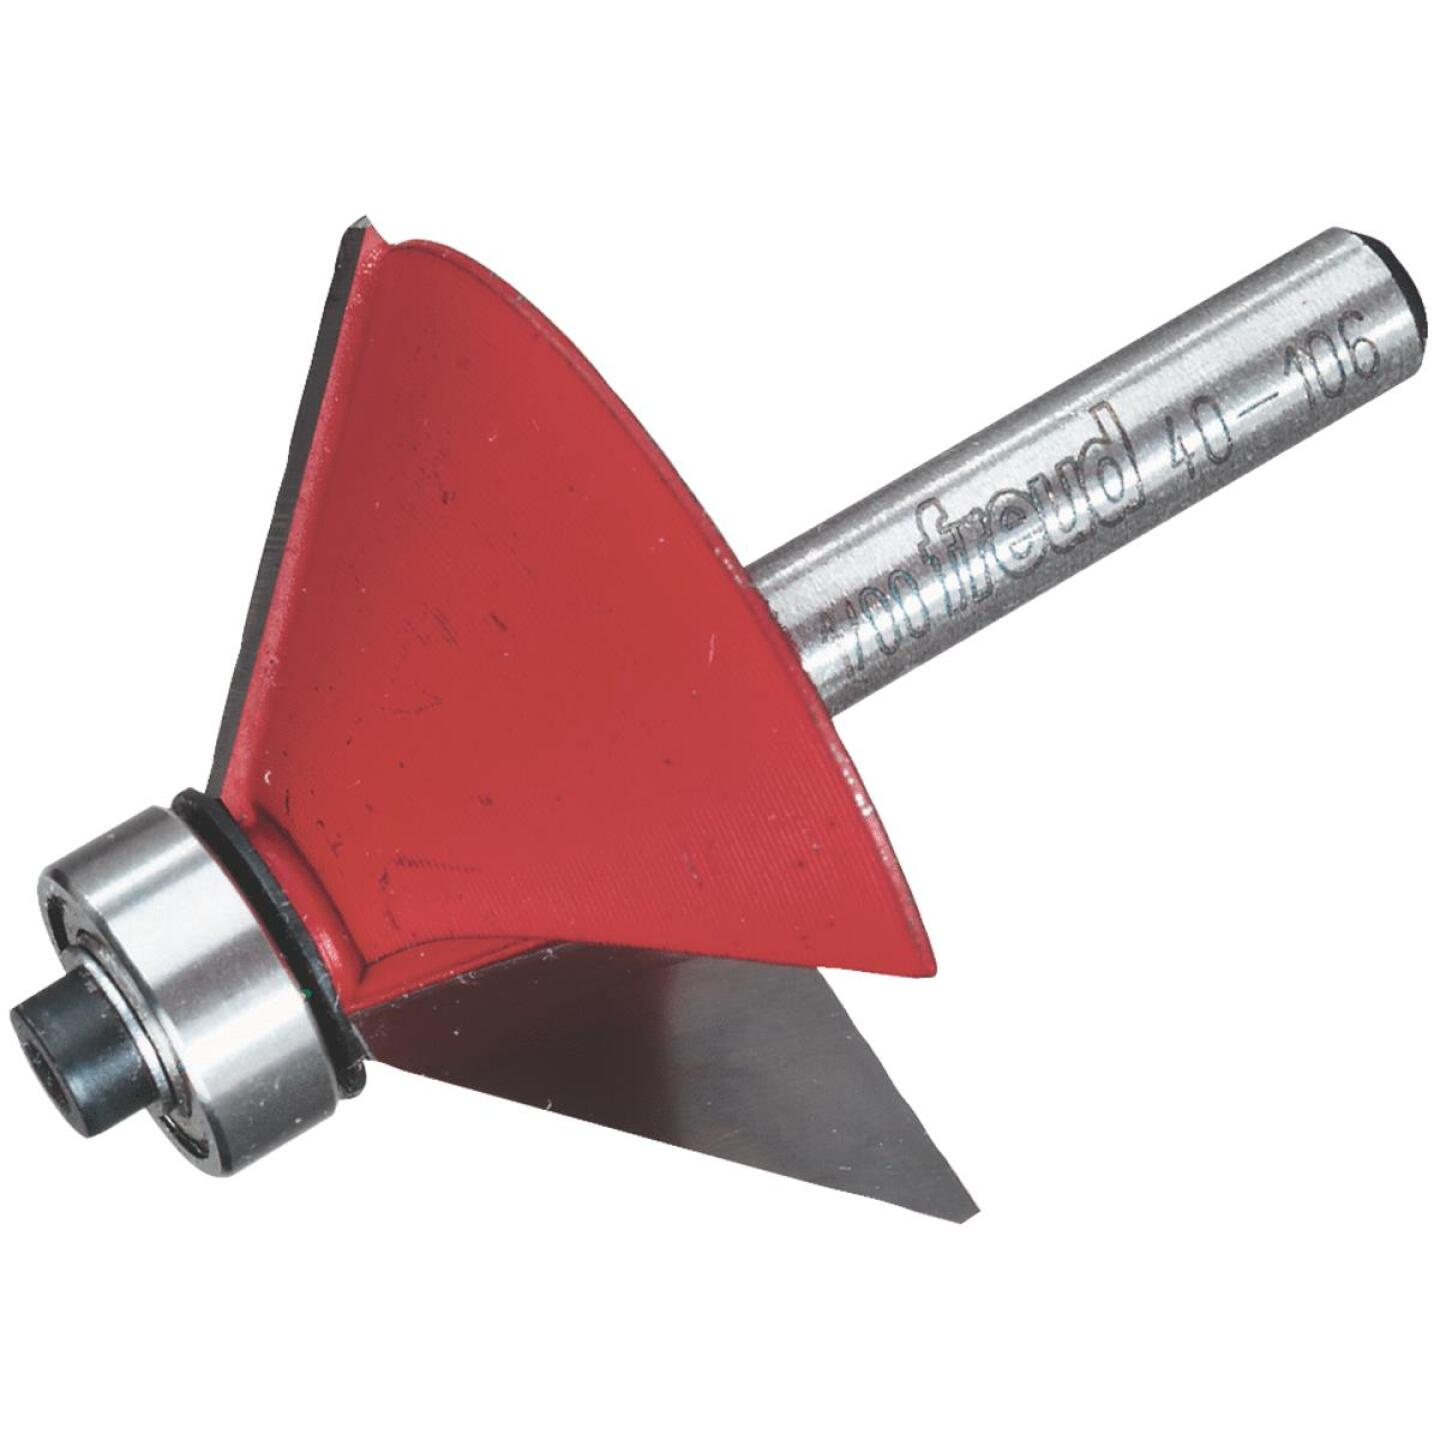 Freud Carbide 5/8 In. Chamfer Bit with Bearing Pilot Image 1